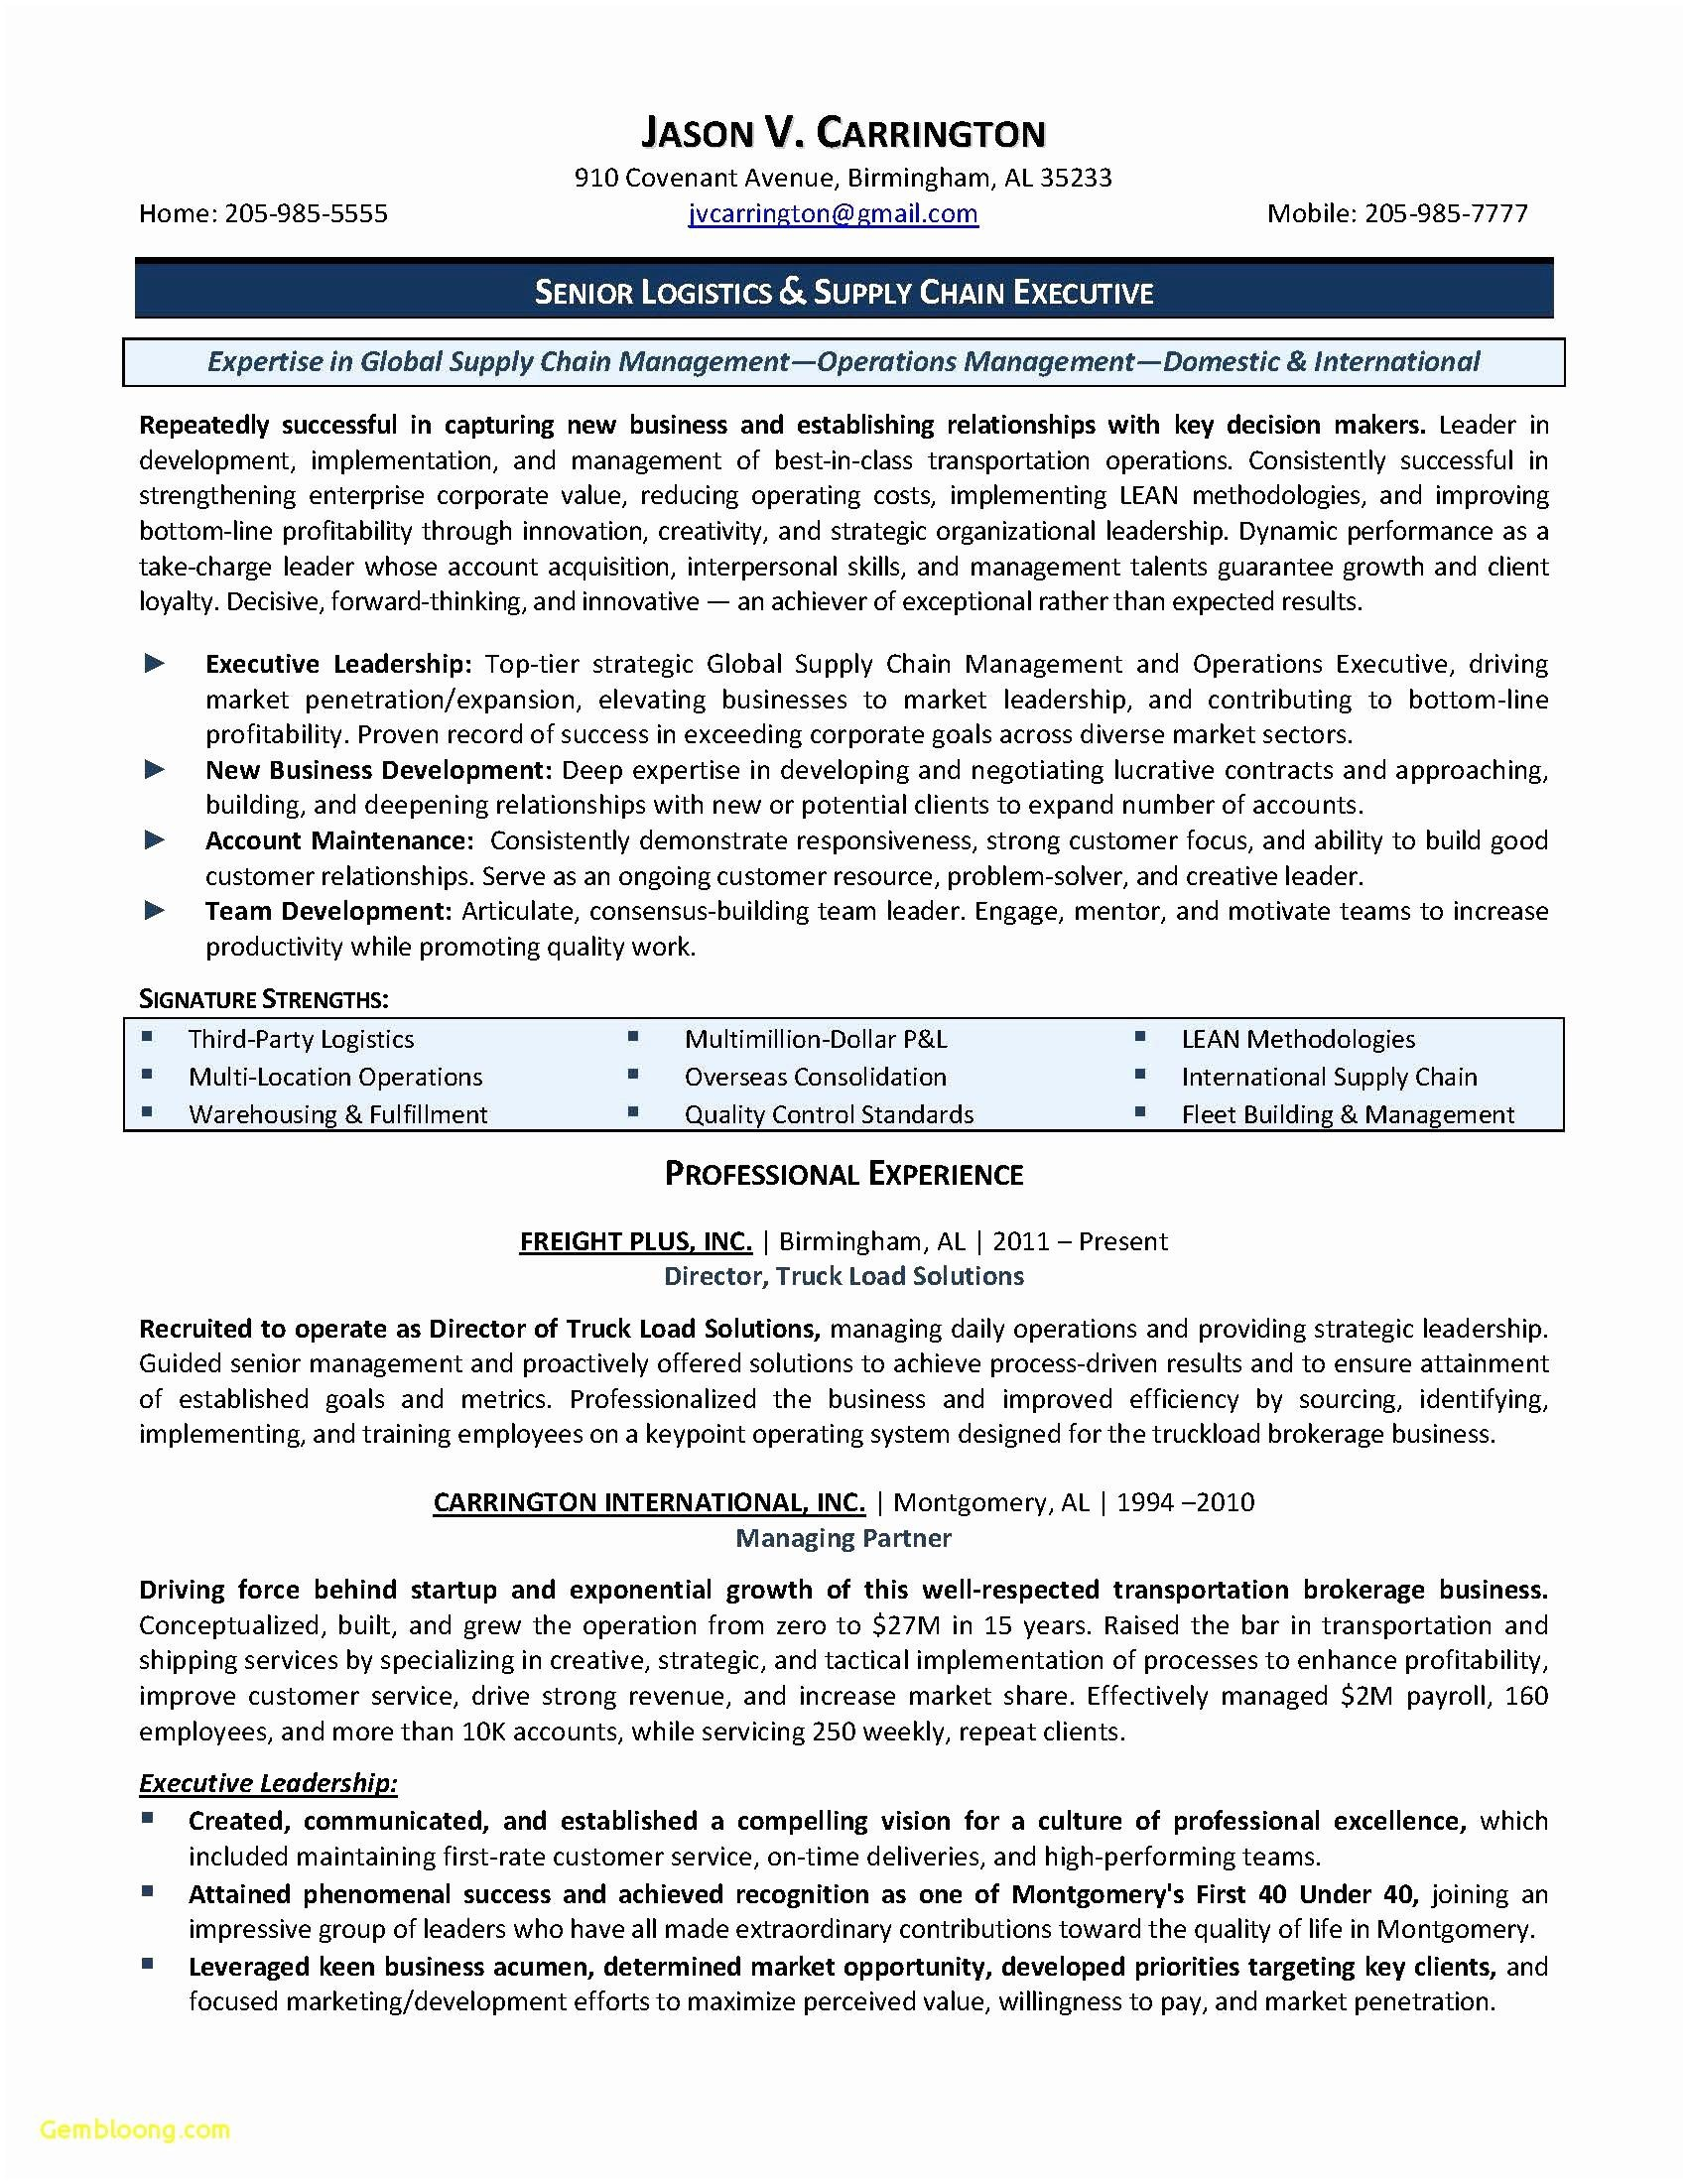 supply chain management resume template example-Resume format for Supply Chain Executive Unique New Resume Cv Executive Sample Luxury Resume Examples 0d 5-o